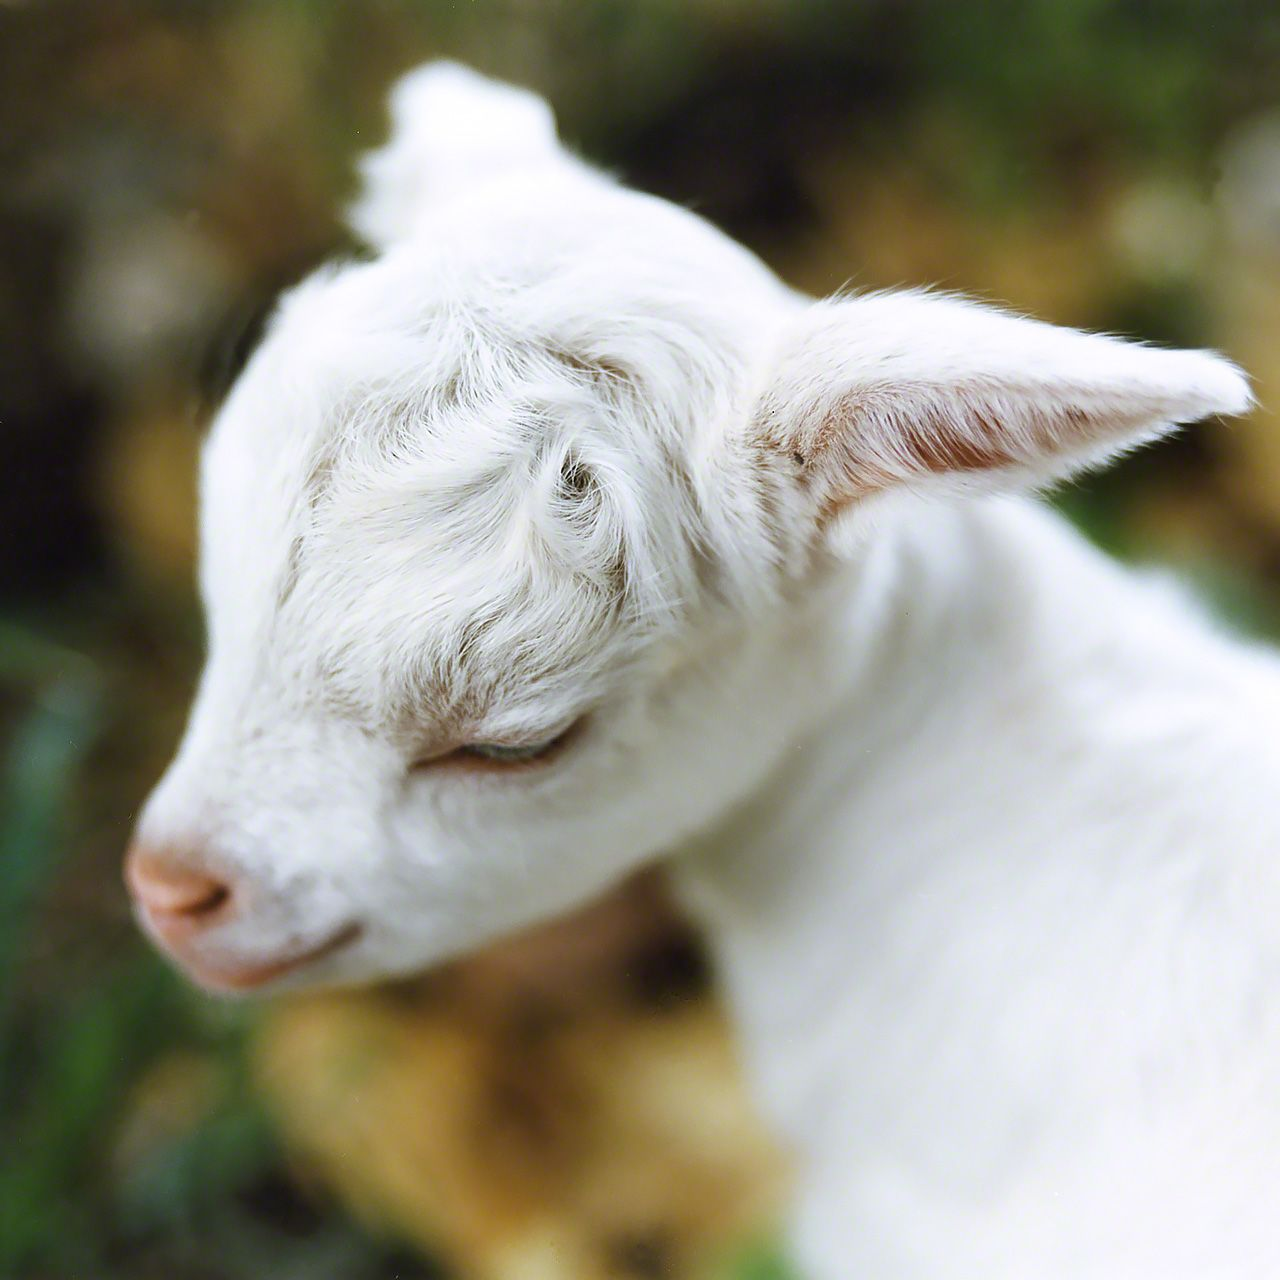 A baby goat, born around two week earlier, on Hatomajima.